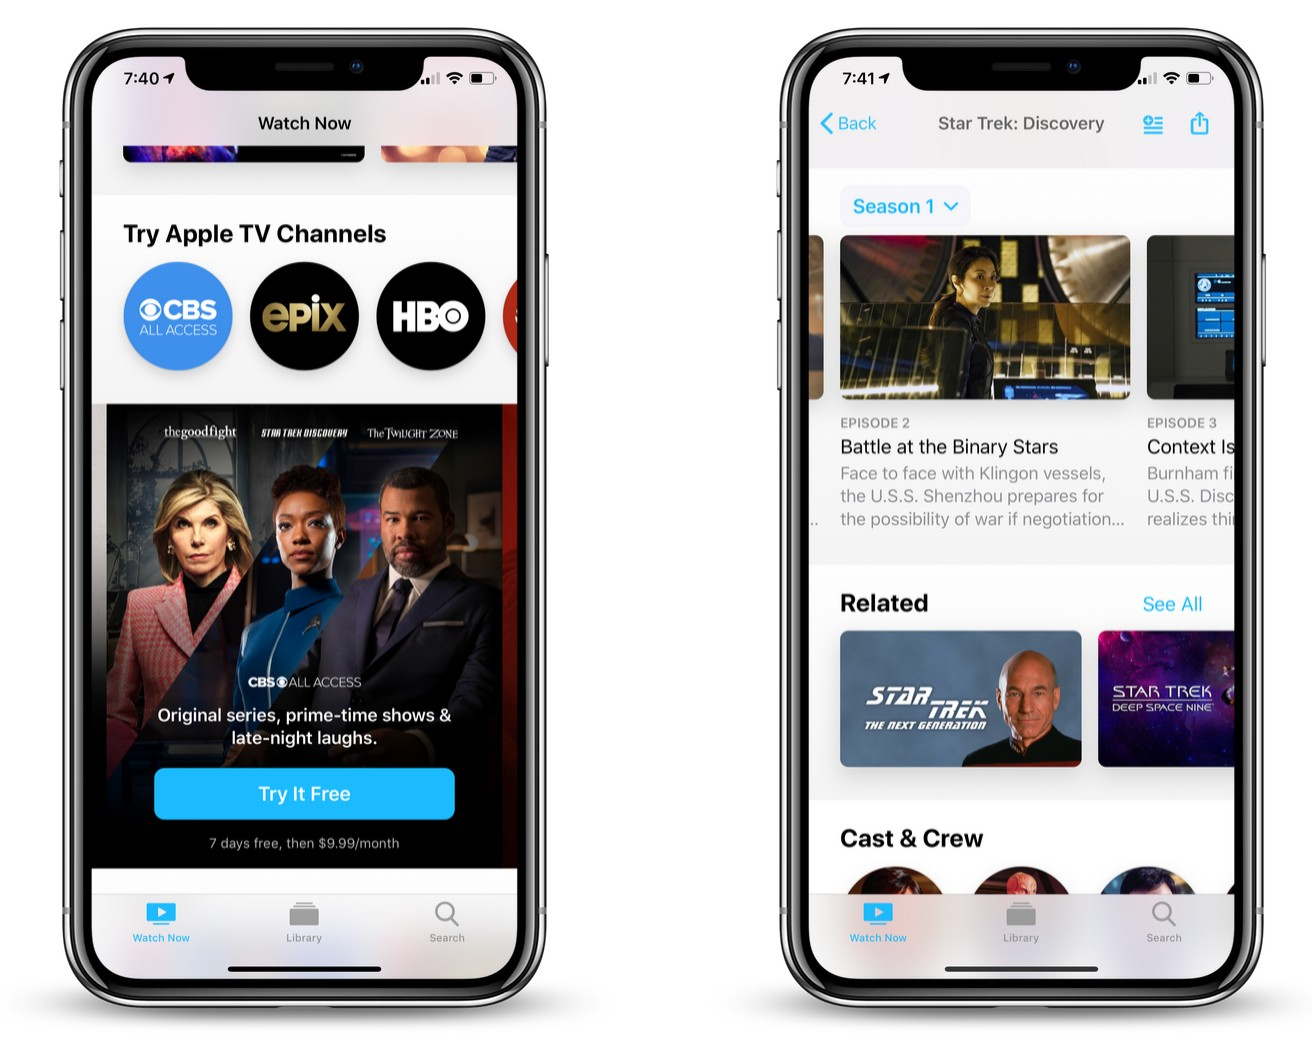 CBS All Access Subscriptions Now Available Via 'Apple TV Channels' Feature